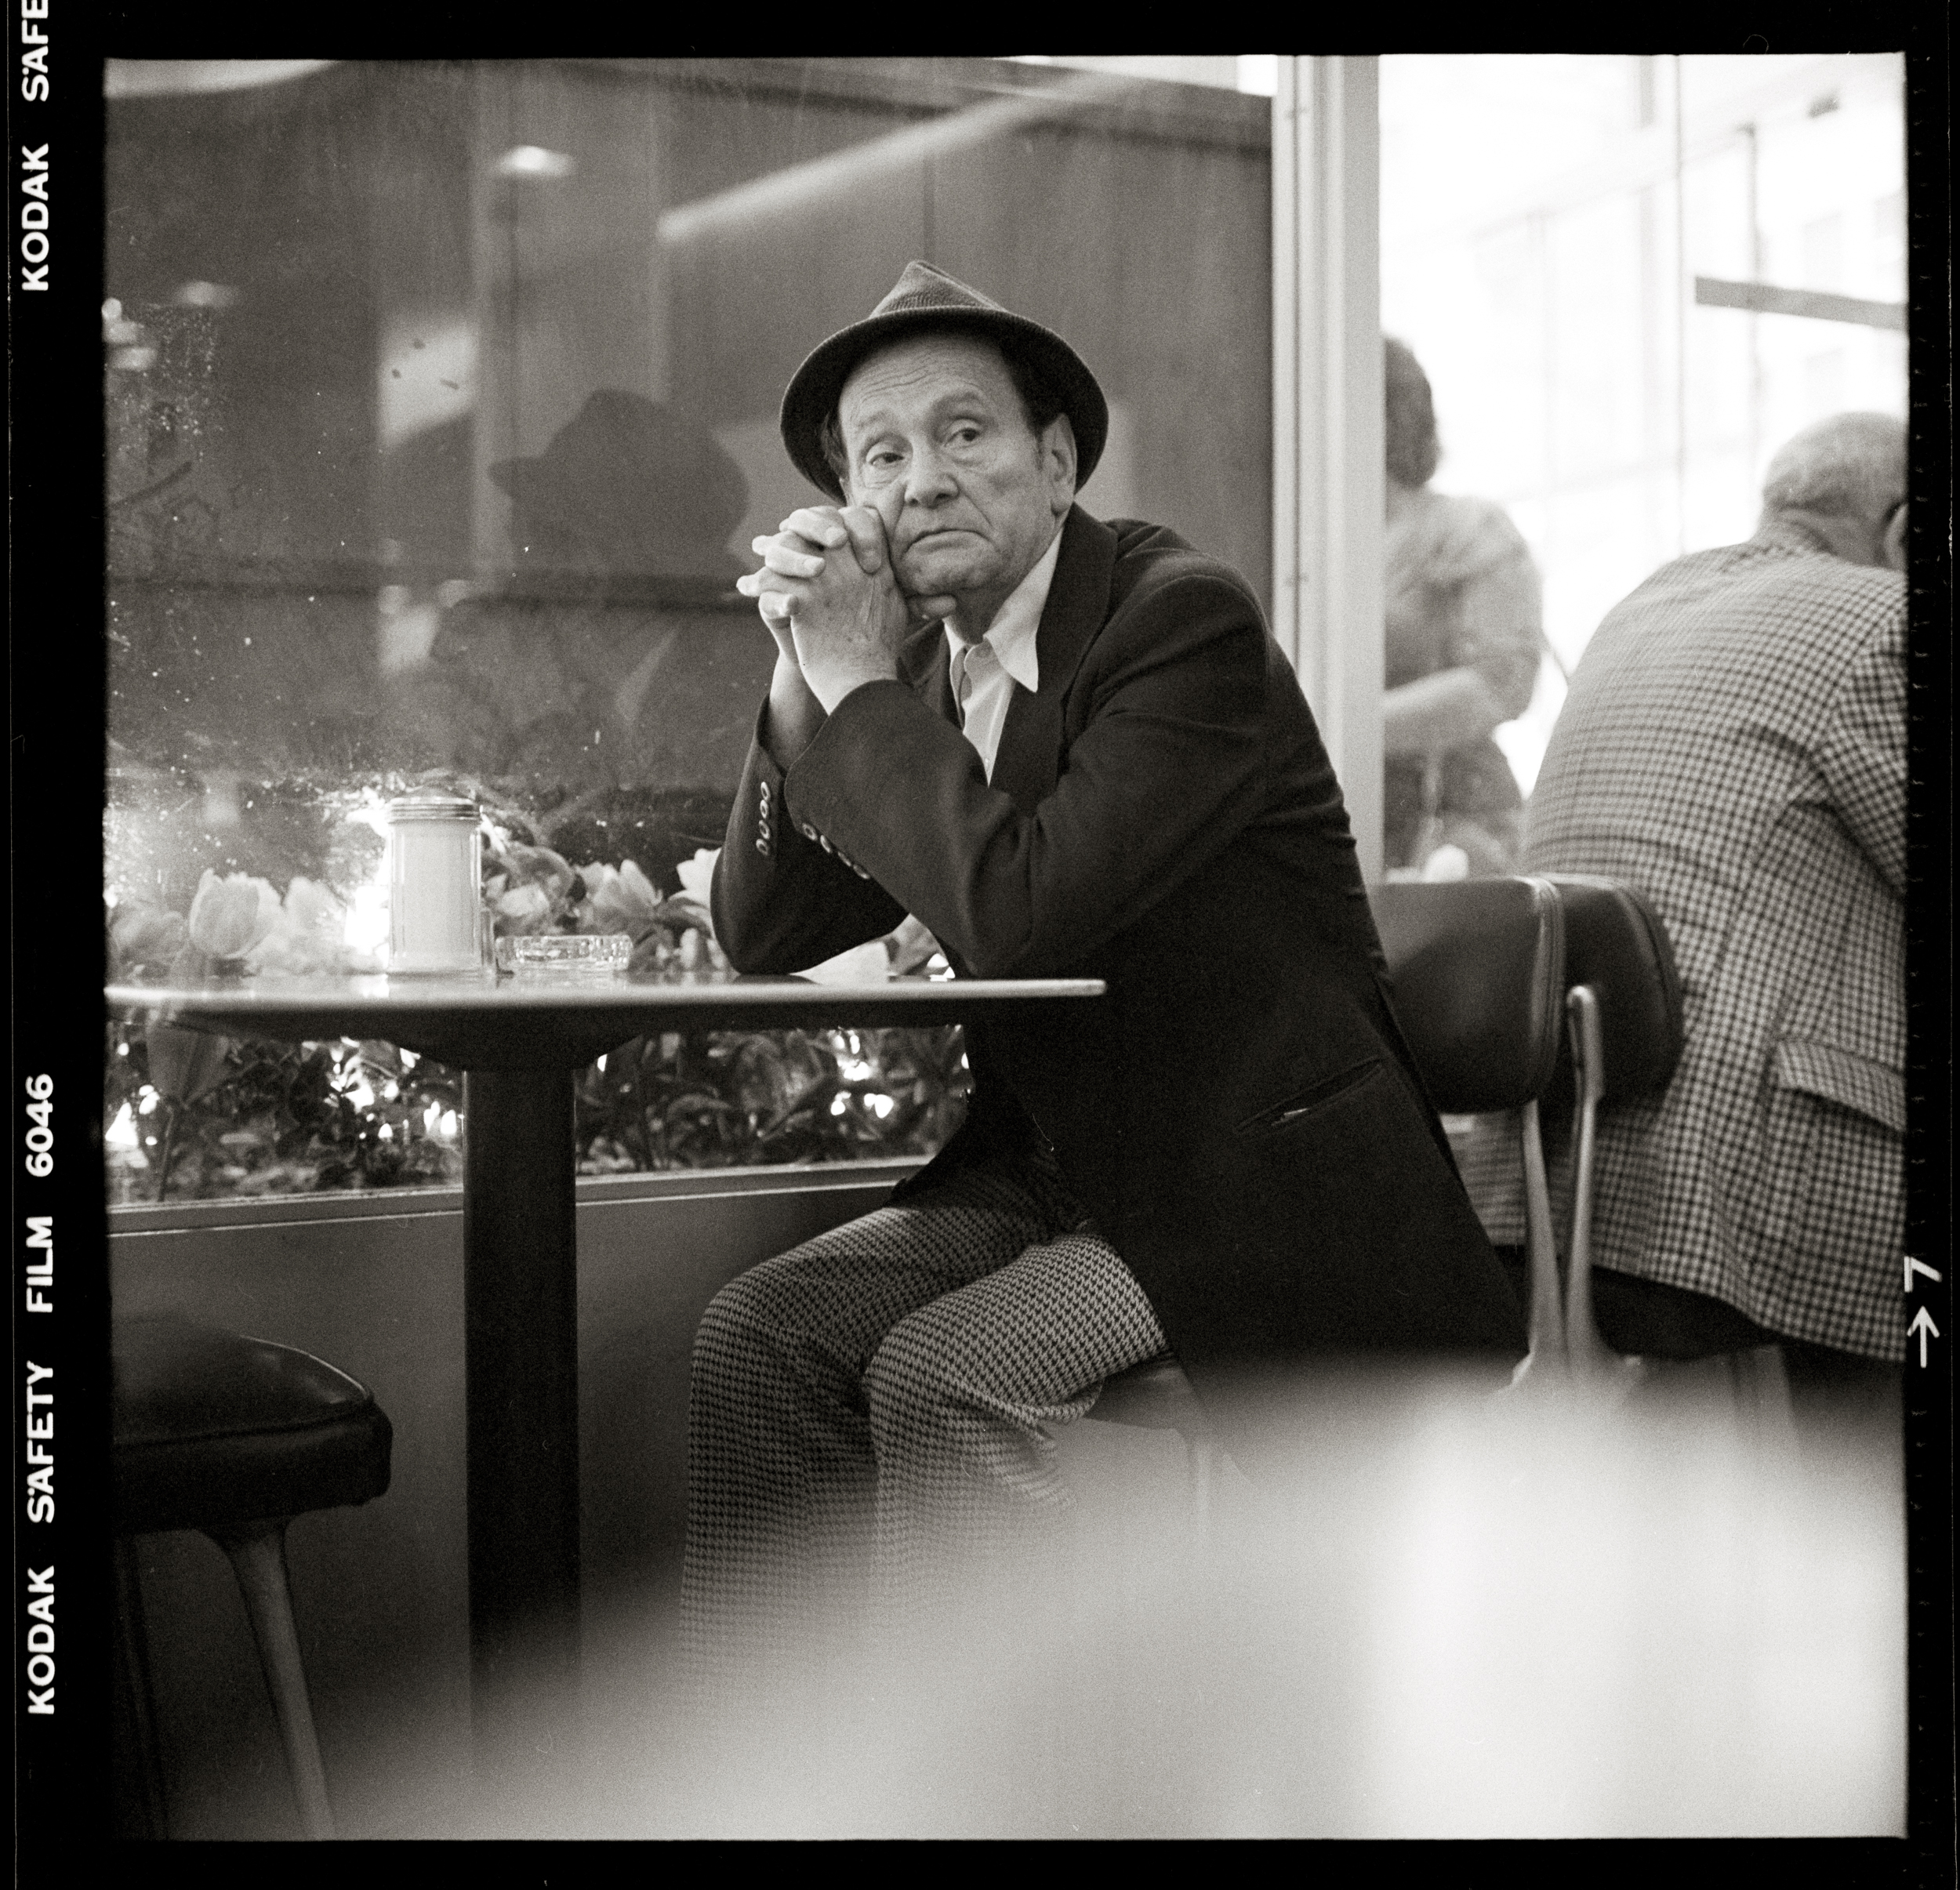 CafeteriaPortraits 24.jpg